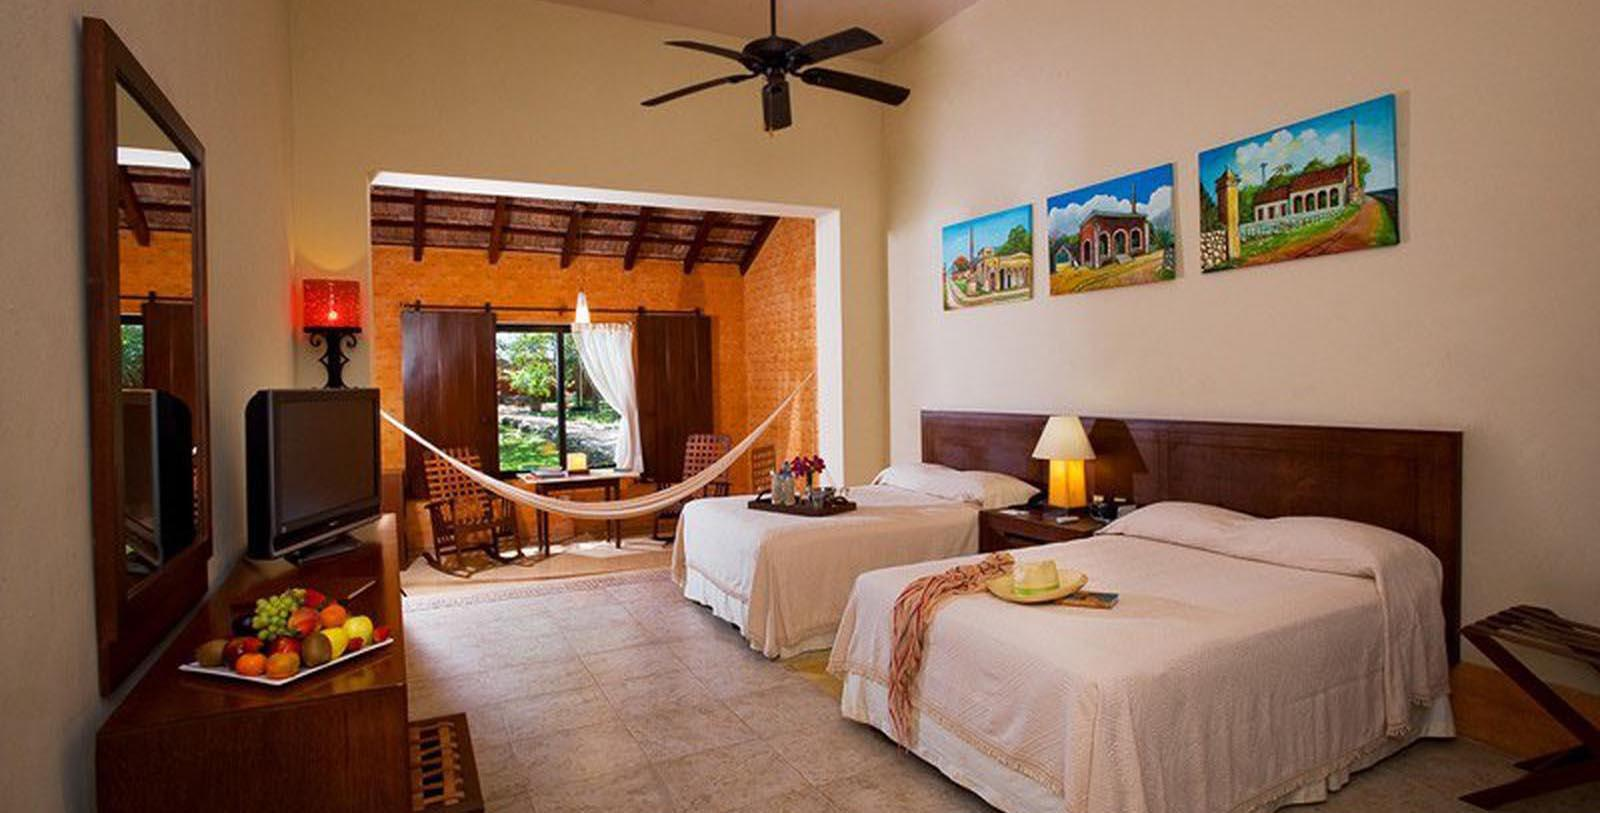 Image of Guestroom Interior, Hacienda La Magdalena, Zapopan, Mexico, 1735, Member of Historic Hotels Worldwide, Location Map